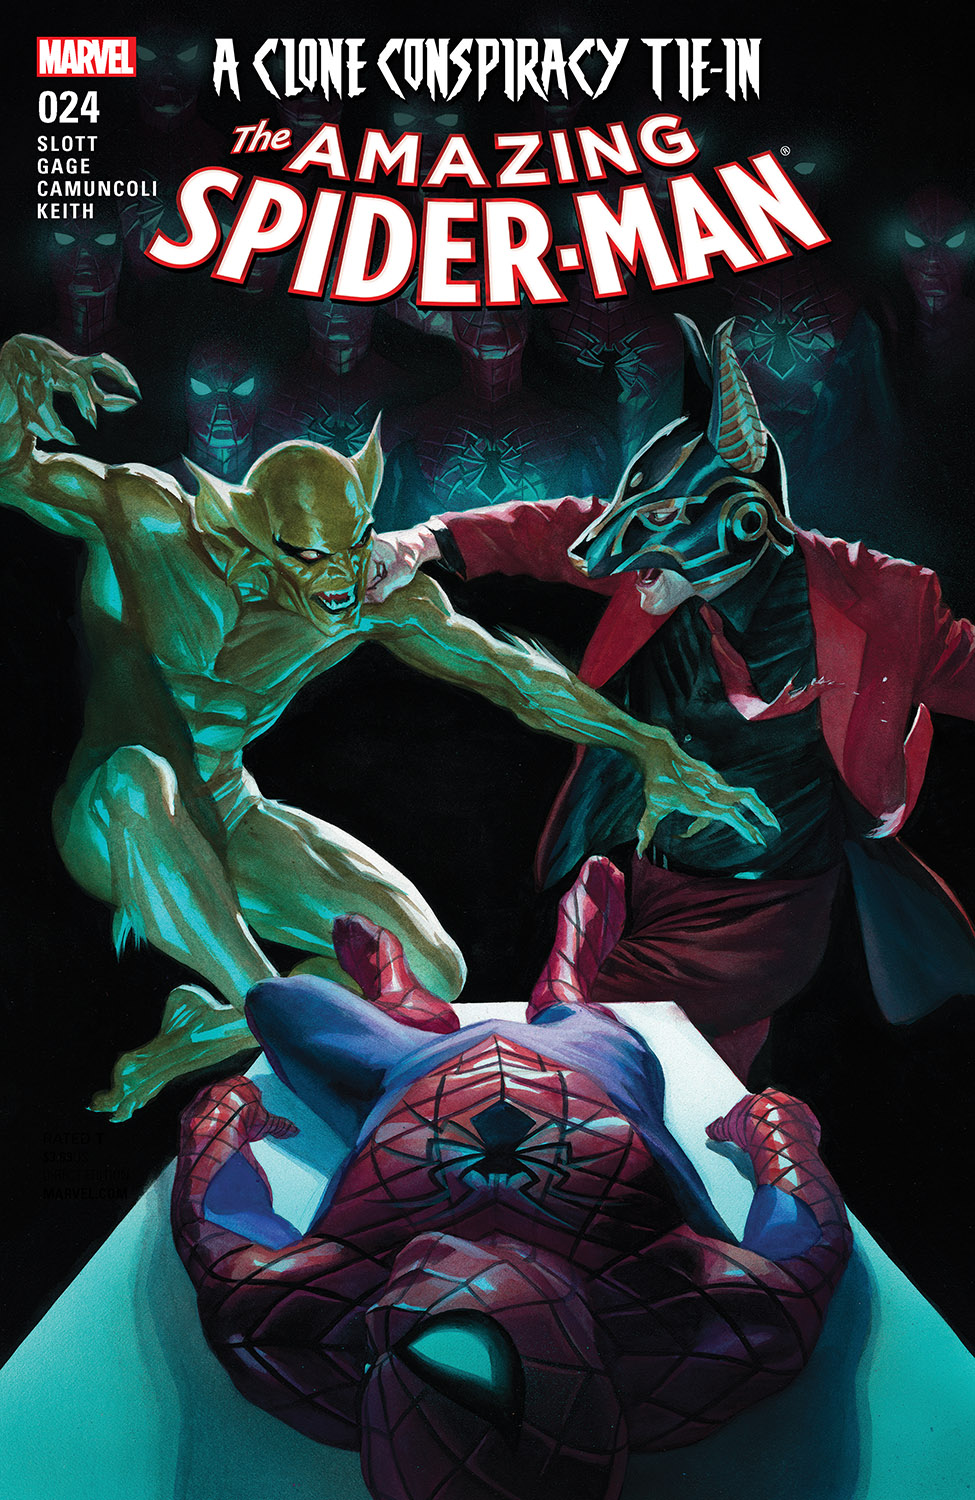 The Amazing Spider-Man (2015) #24